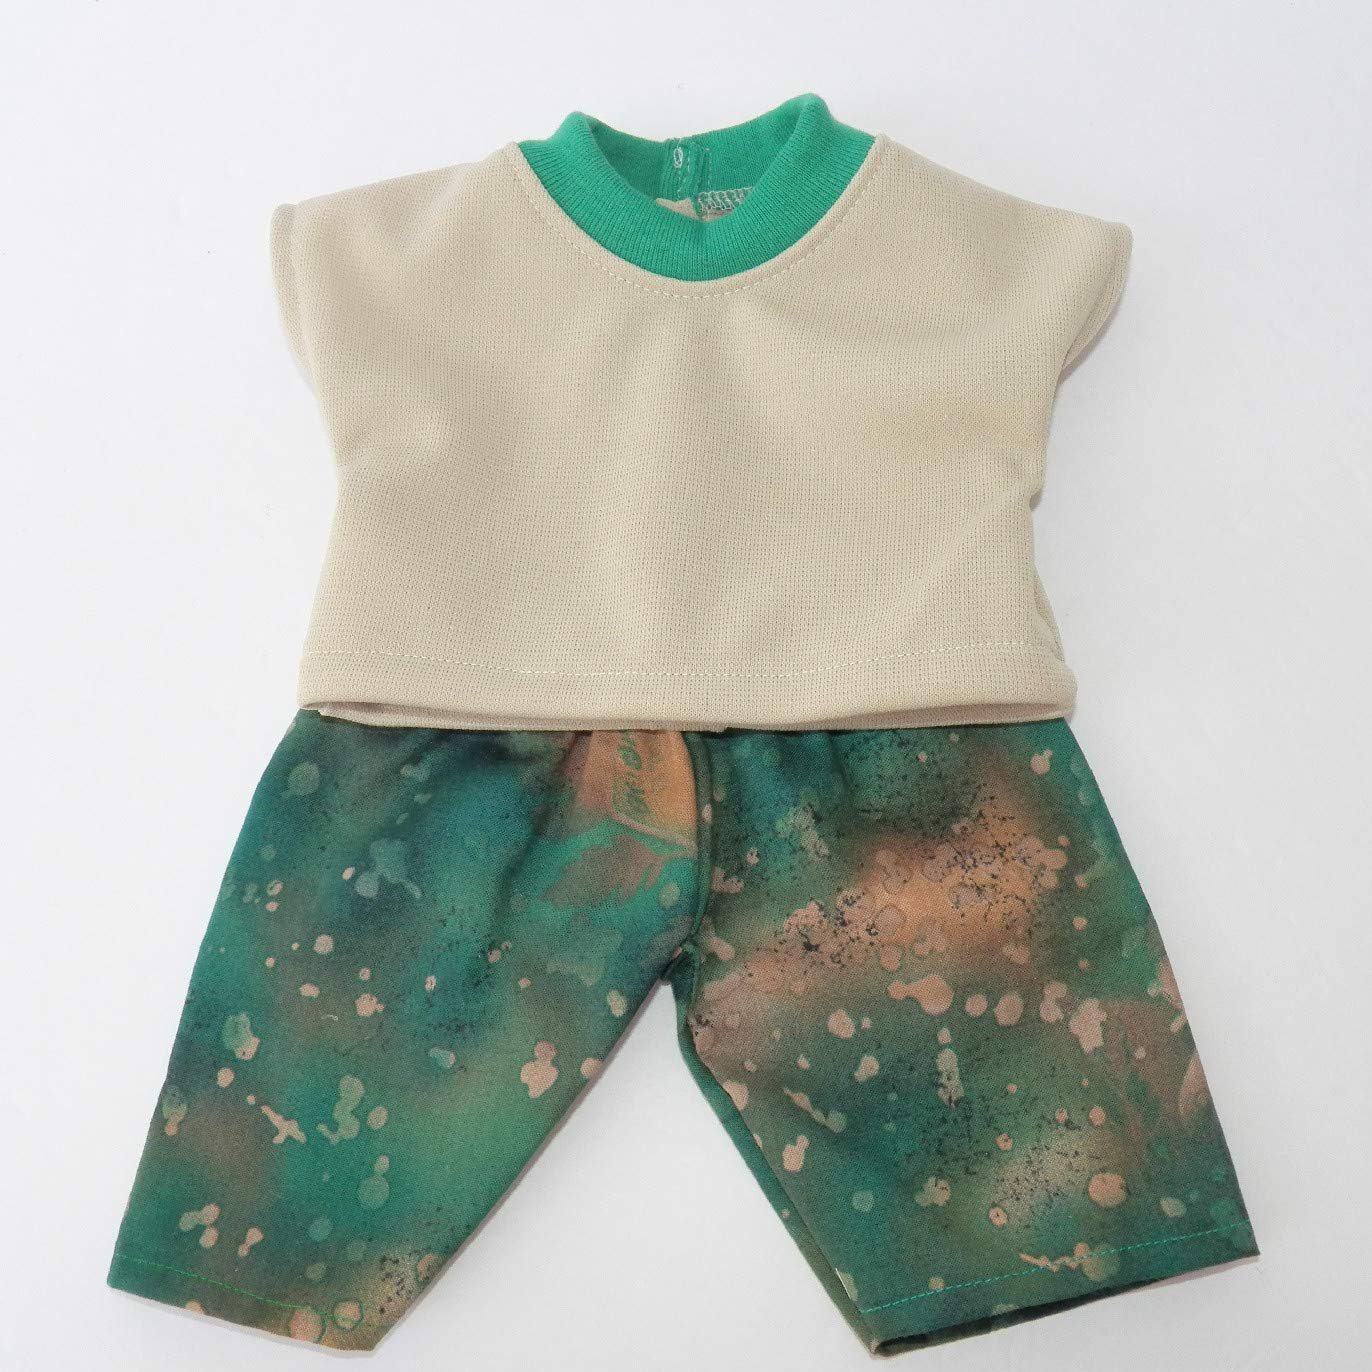 Cabbage Patch Doll Clothes 14 Boy or Preemie Size Green Fall Pants Outfit Clothes Only